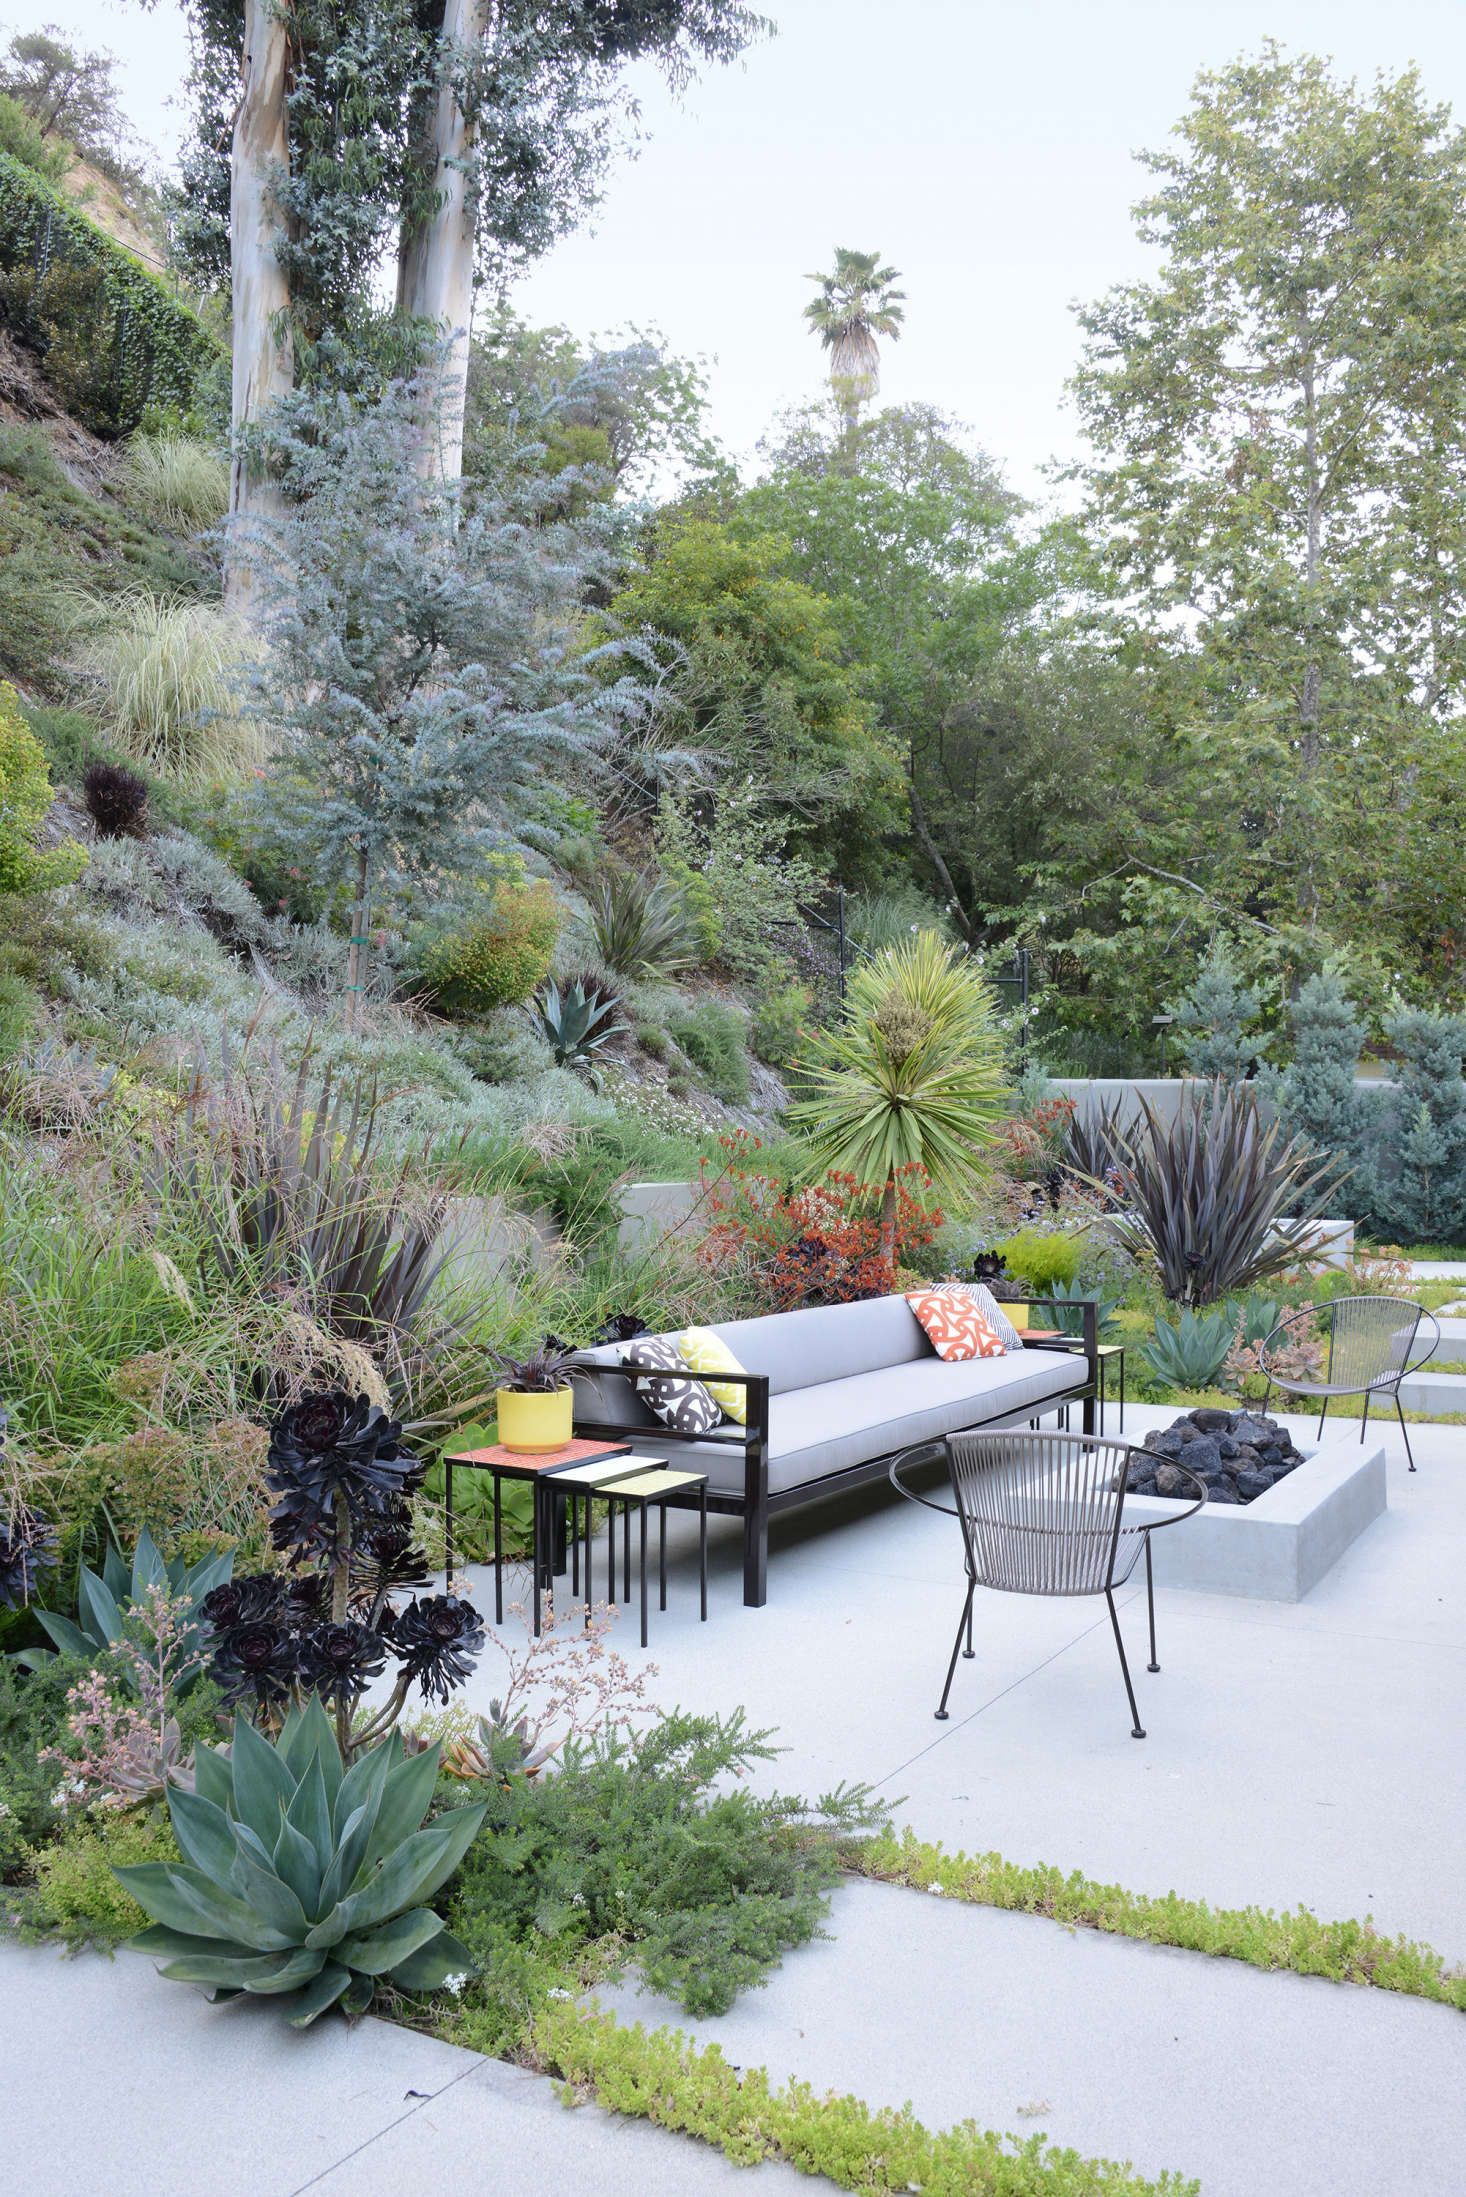 Many people use their fire pit area as an extra room, a place for entertaining, casual dinners, and family gatherings.